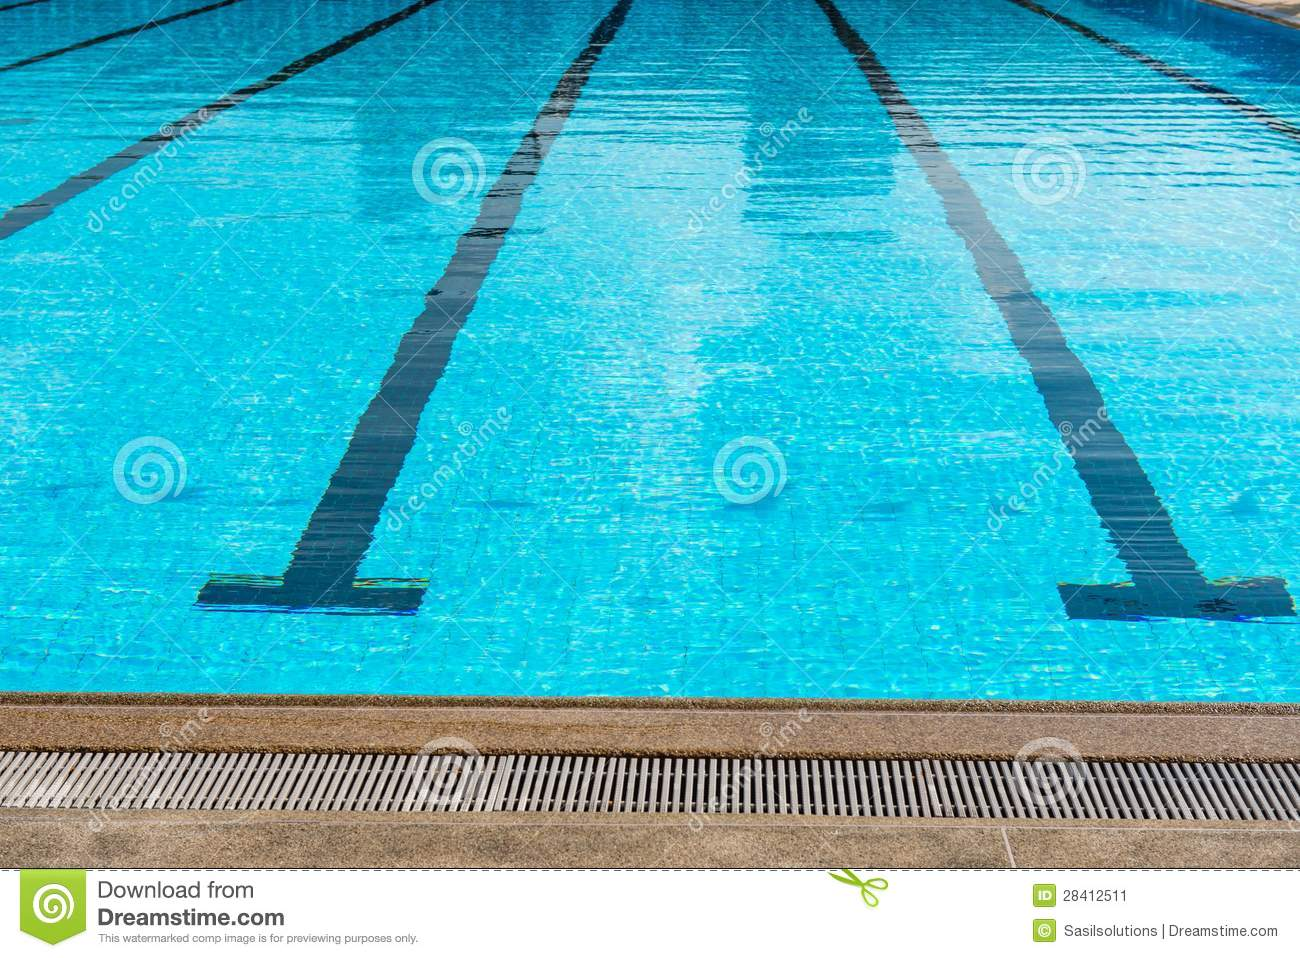 large olympic size swimming pool with racing lanes - Olympic Swimming Pool Lanes